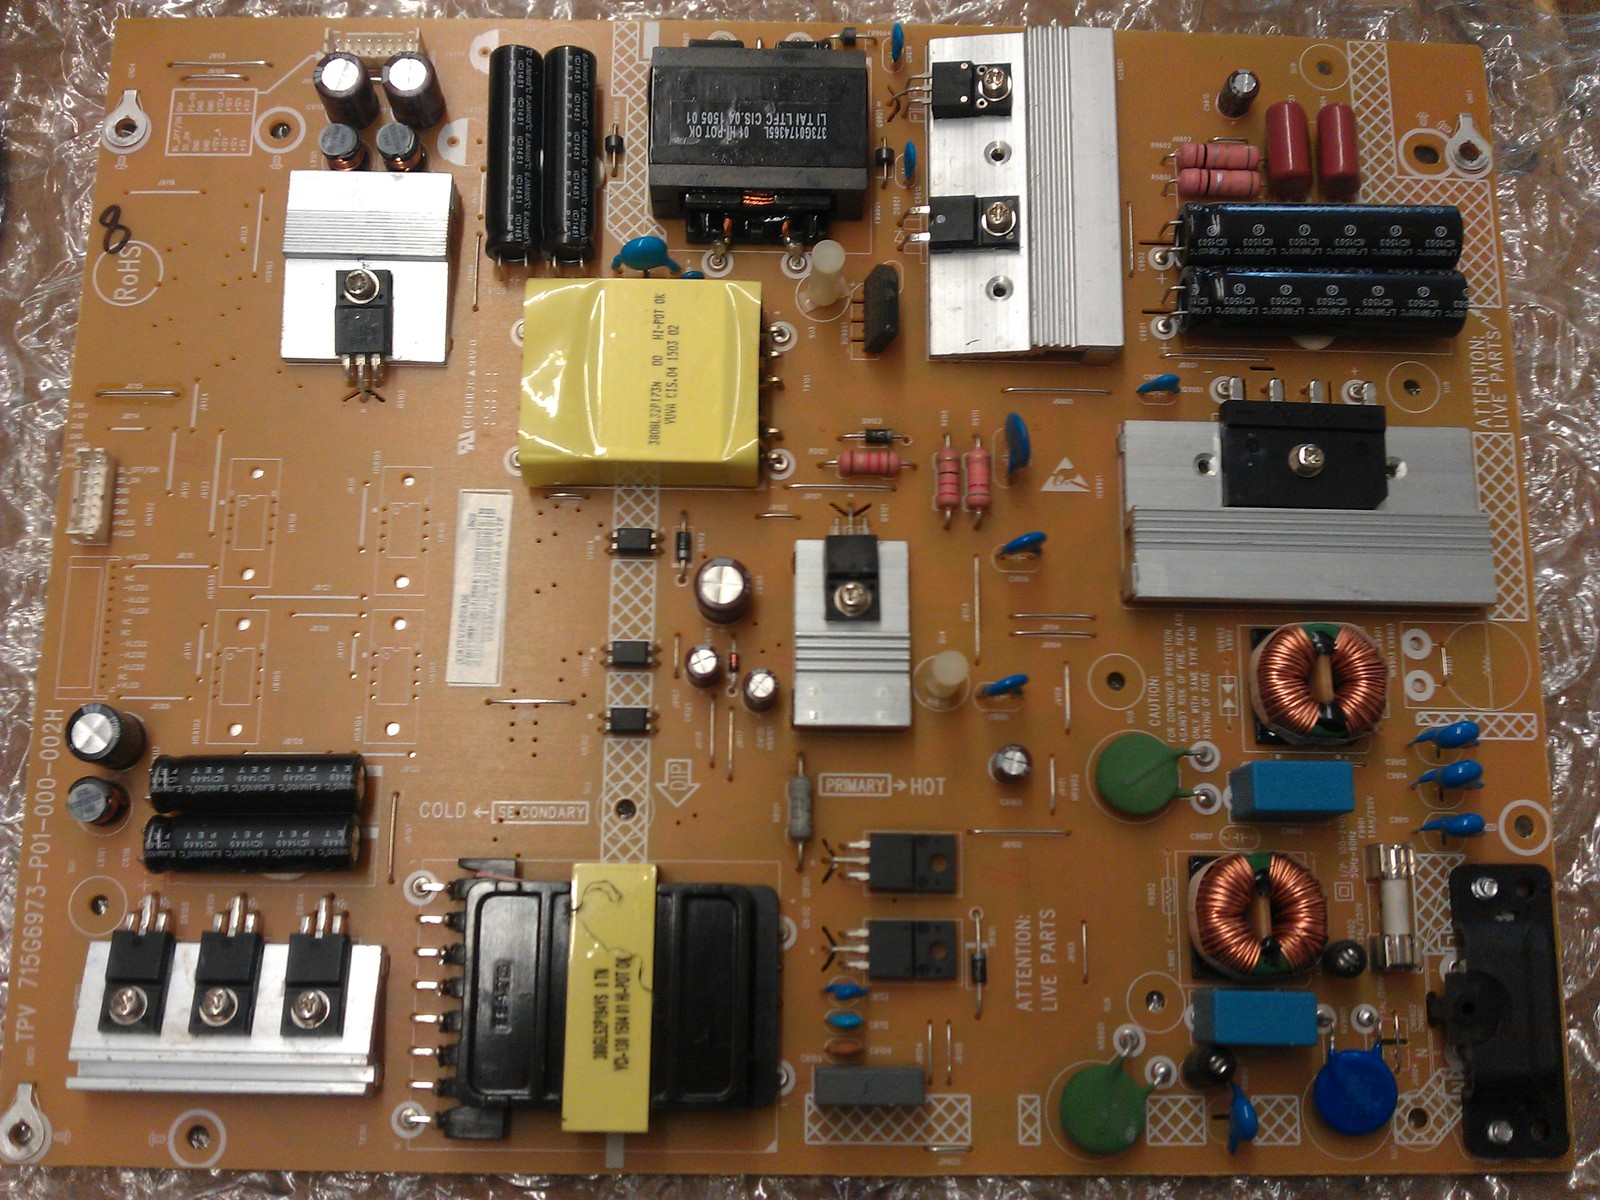 ADTVE2420AD4 Power Supply  Board From Vizio E50-C1 LTMWSKAQ LCD TV